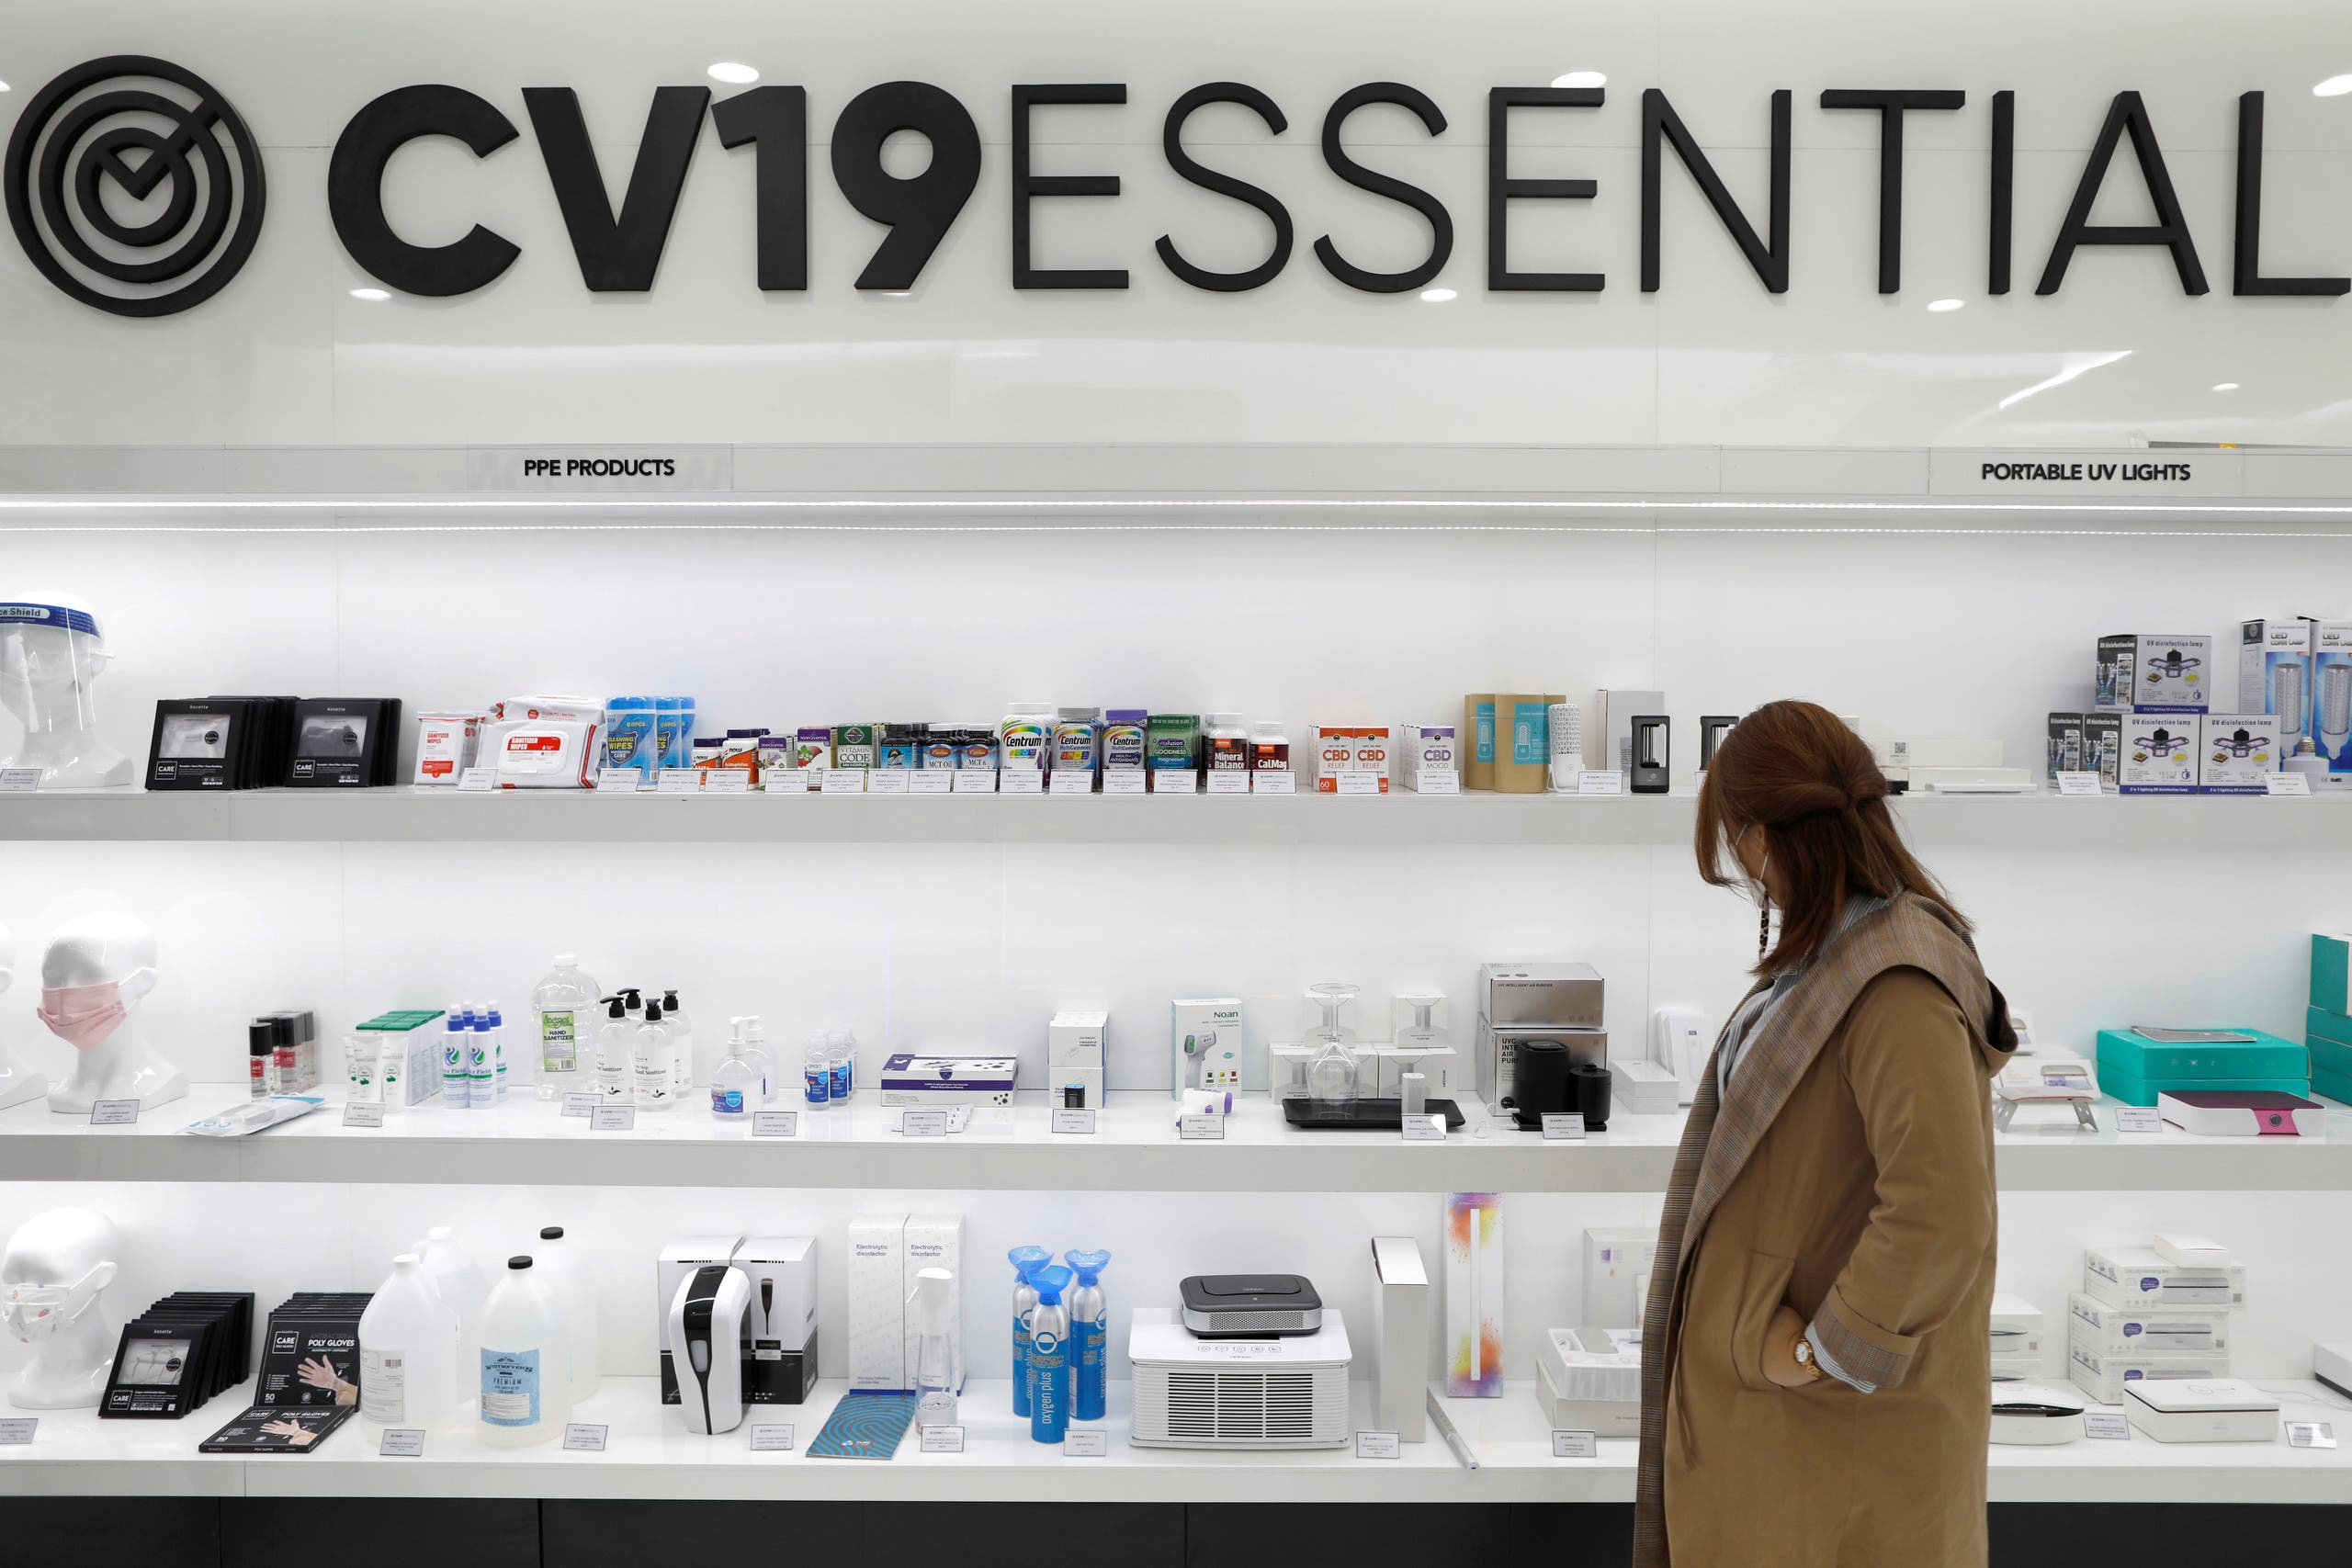 A person looks at the shop window at CV19ESSENTIAL in New York City, September 21, 2020. (Reuters)